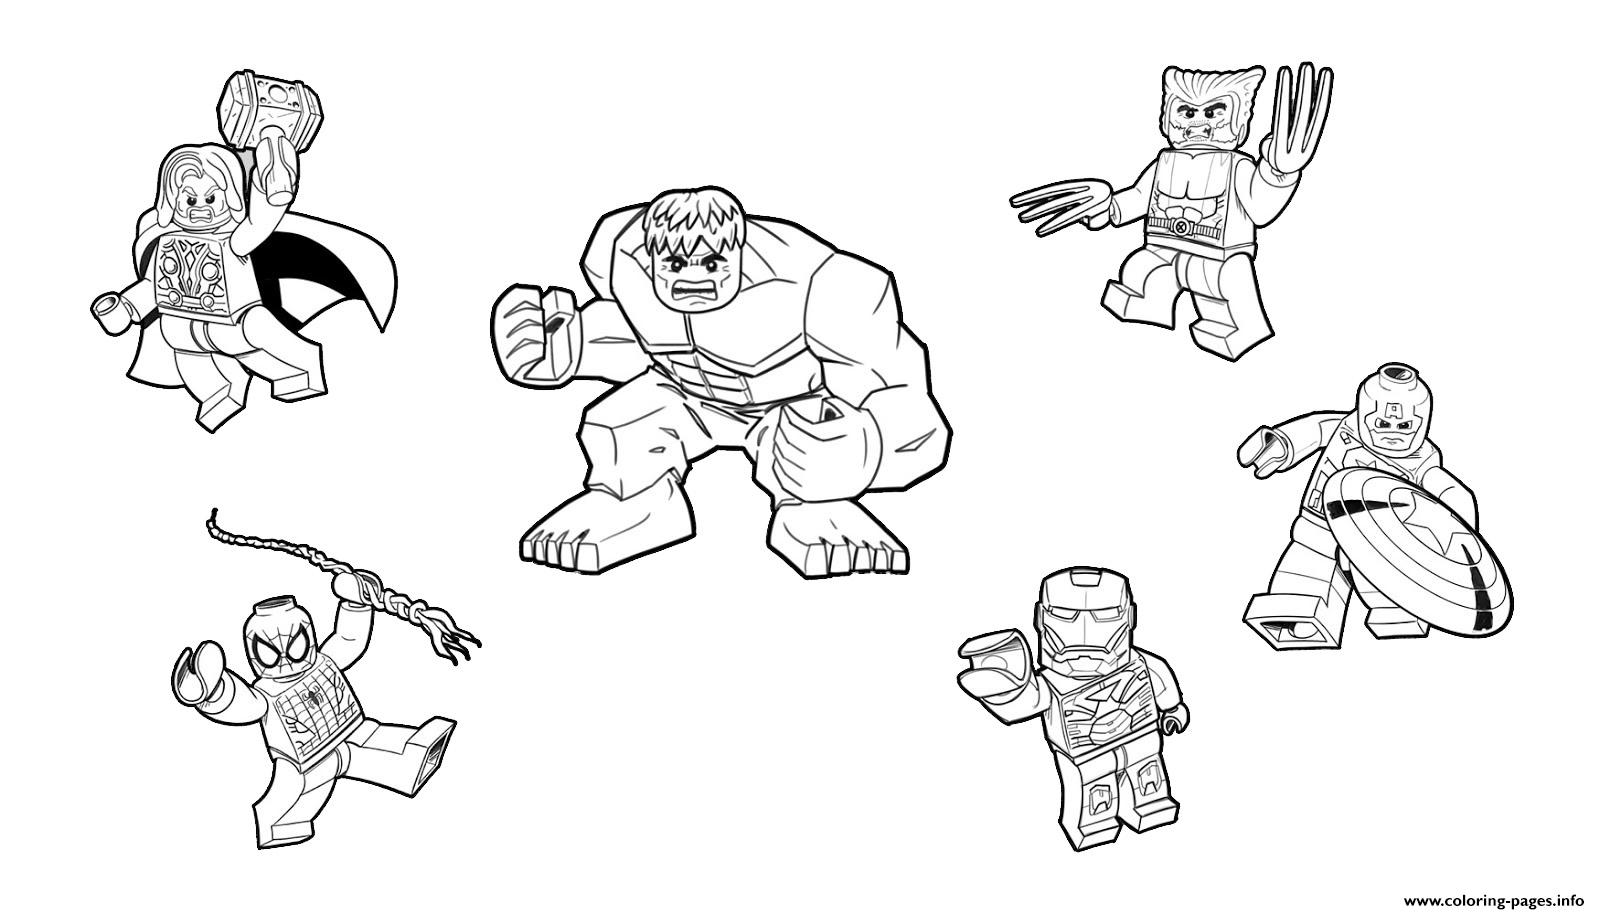 Team Lego Marvel Hulk Ironman Spiderman Thor America Wolverine Coloring Pages